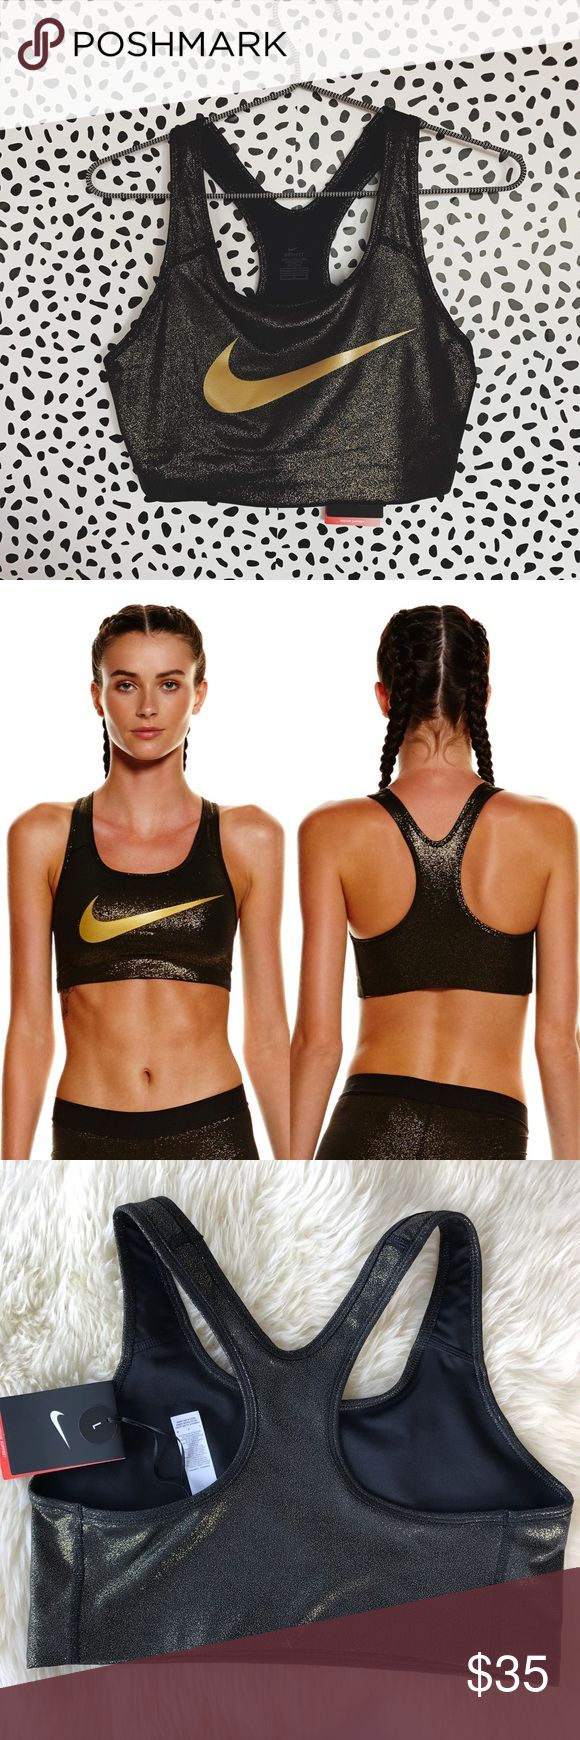 Nike Pro Gold Sports Bra •The Nike Pro Classic Swoosh Women's Medium Support Sports Bra features a compression fit and low racerback straps to provide medium support and enhanced mobility during your workout.  •Size Large, true to size.  •New with tag.   •NO TRADES/HOLDS/PAYPAL/MERC/VINTED/NONSENSE. Nike Intimates & Sleepwear Bras